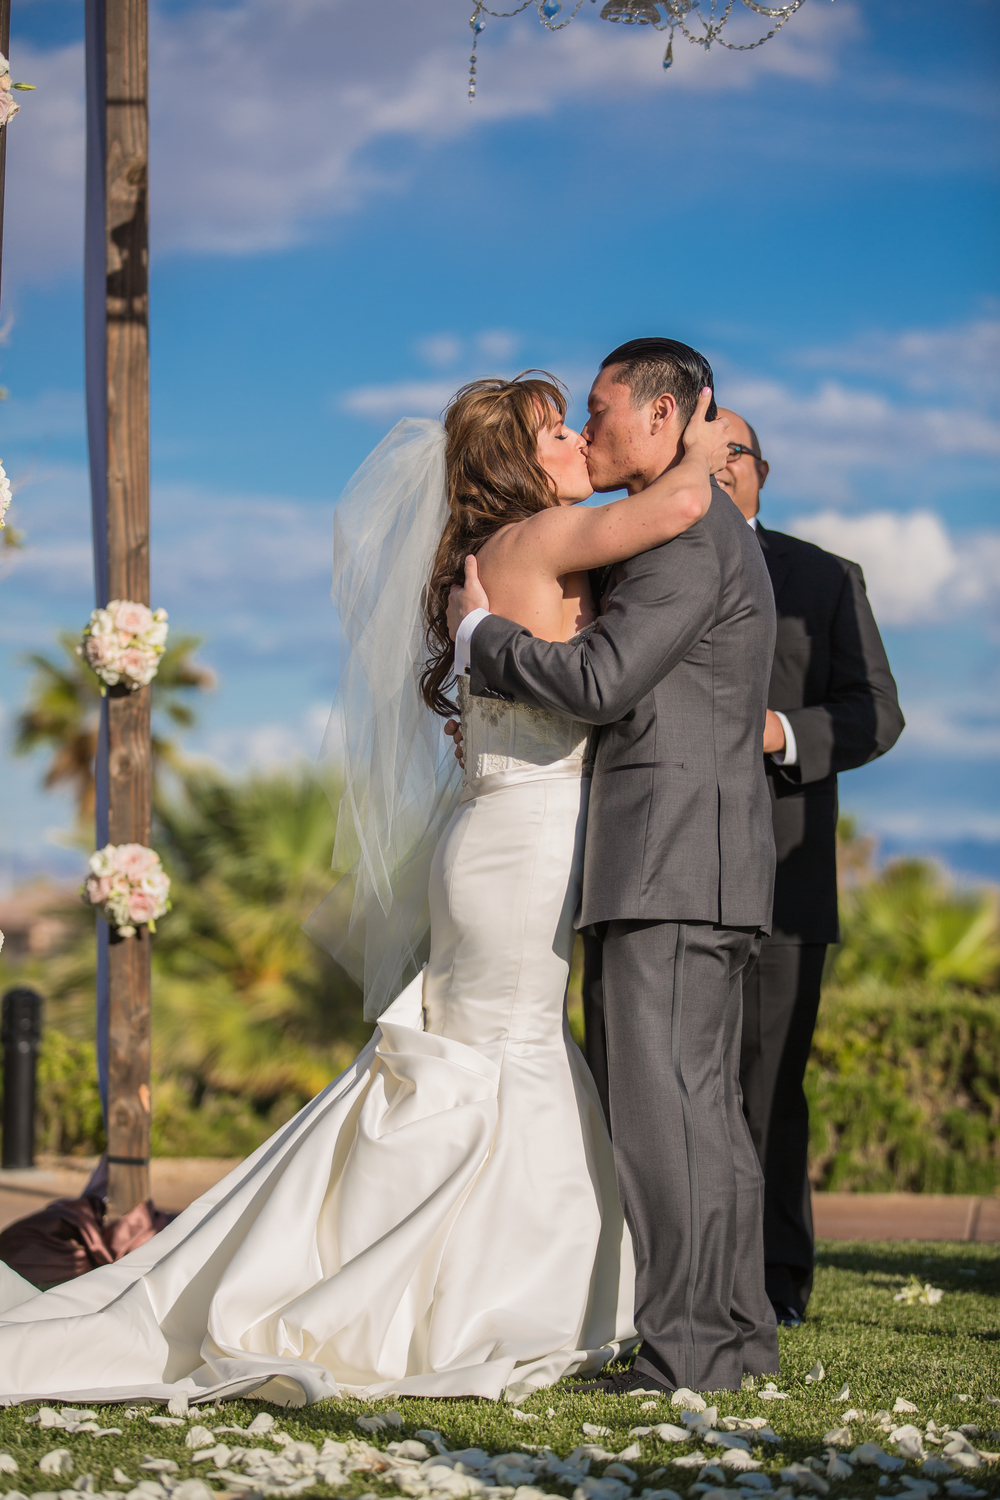 The First Kiss! Las Vegas Wedding at Siena Golf Club  |  Photography by Ella Gagiano  |  Floral and Decor by Naakiti Floral  |  Las Wedding Planner Andrea Eppolito